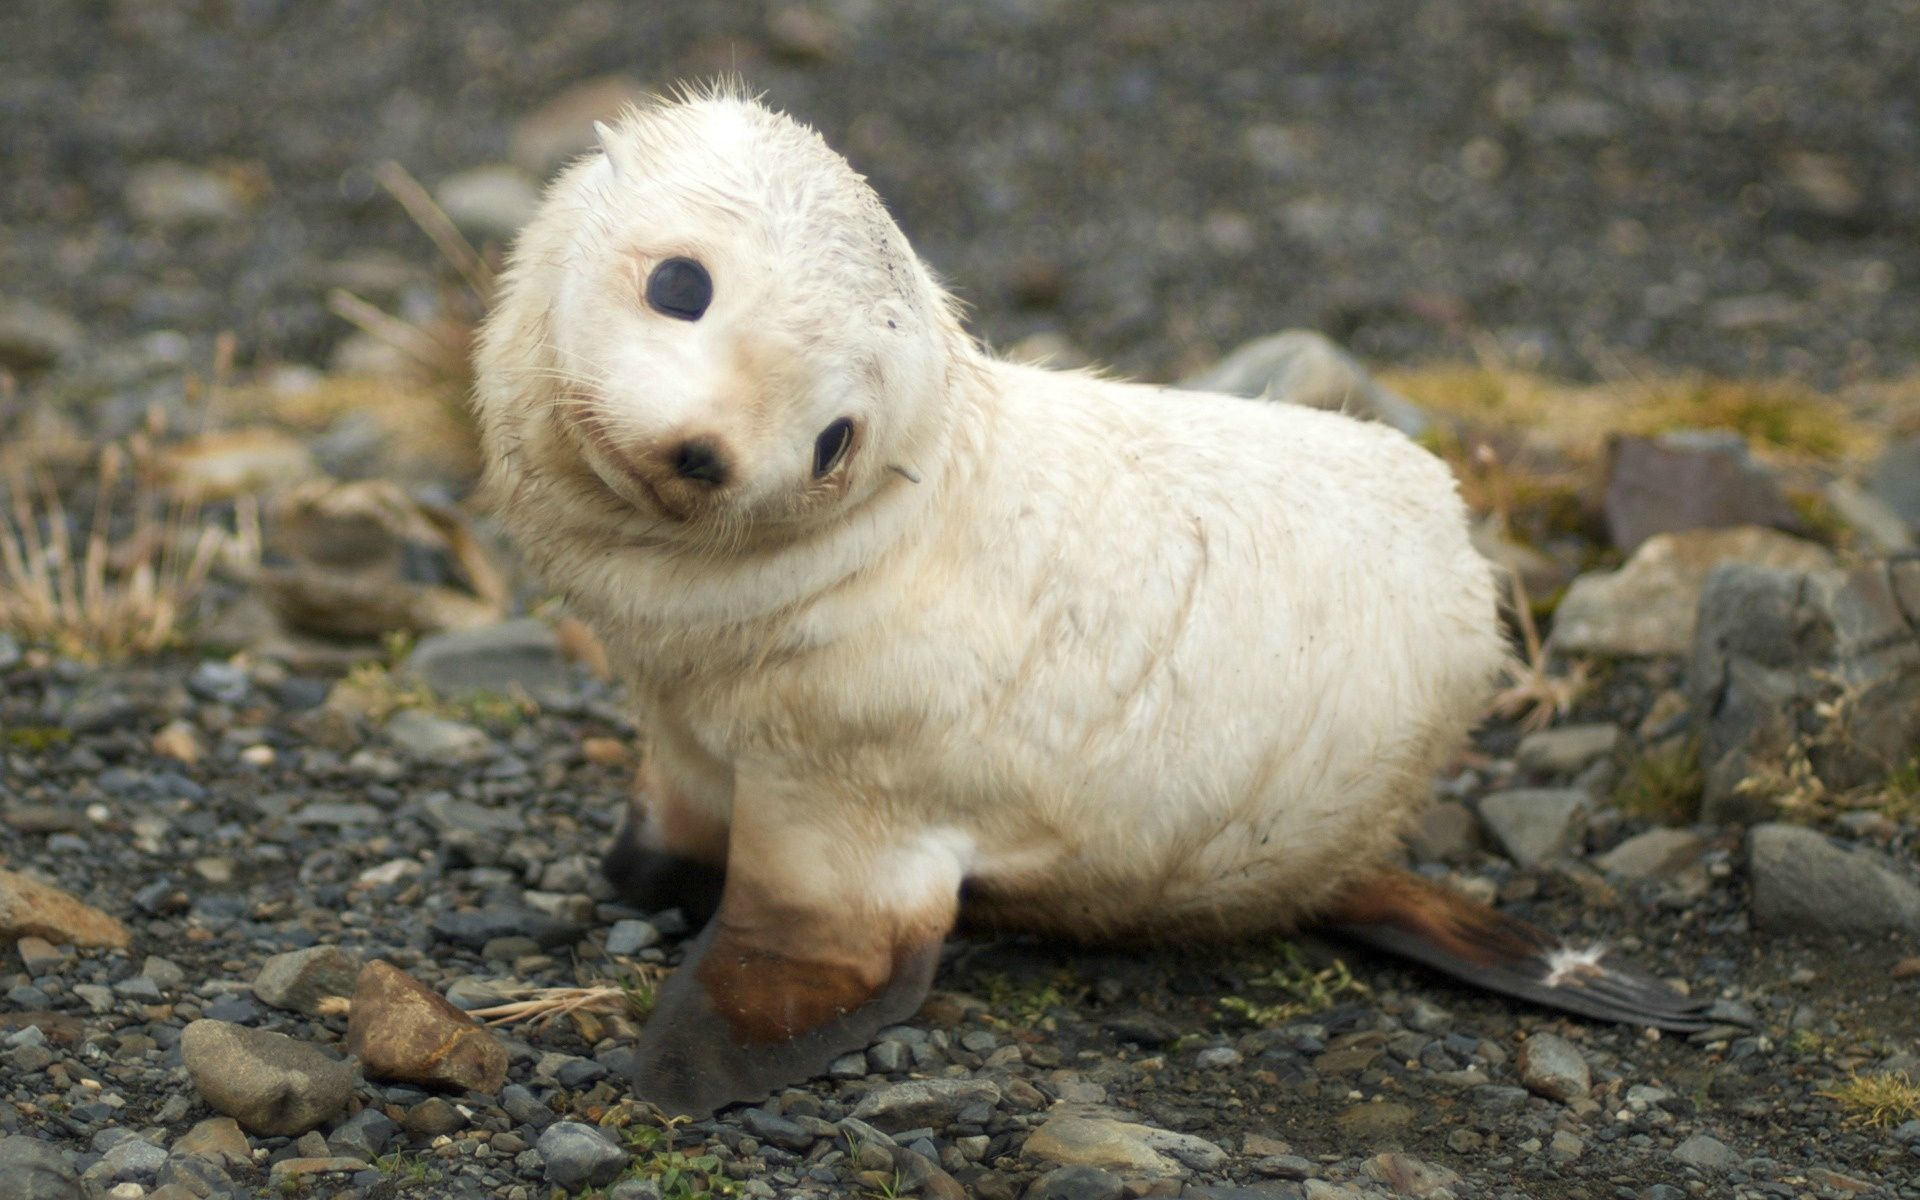 Just a baby Sea Lion, not a big deal, really